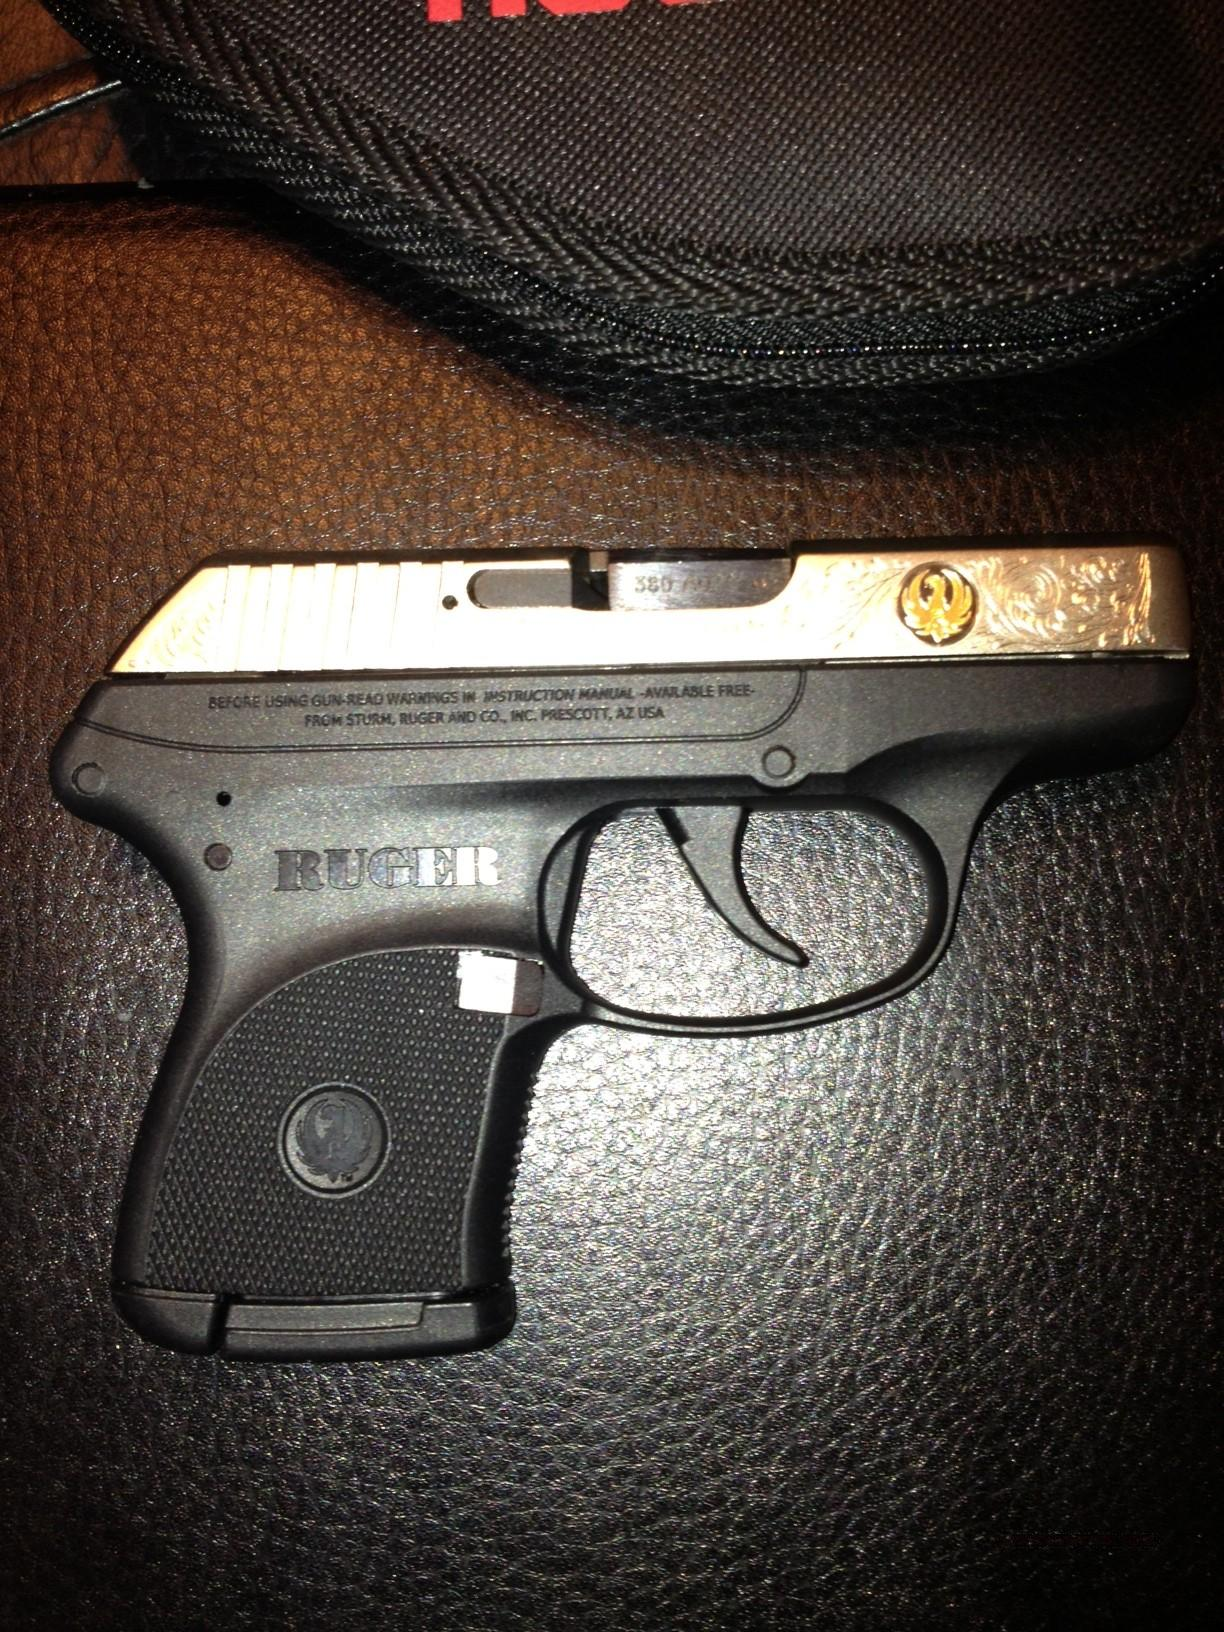 Ruger lc9 talo edition, laser etched nickel w/24 carat gold inlay.